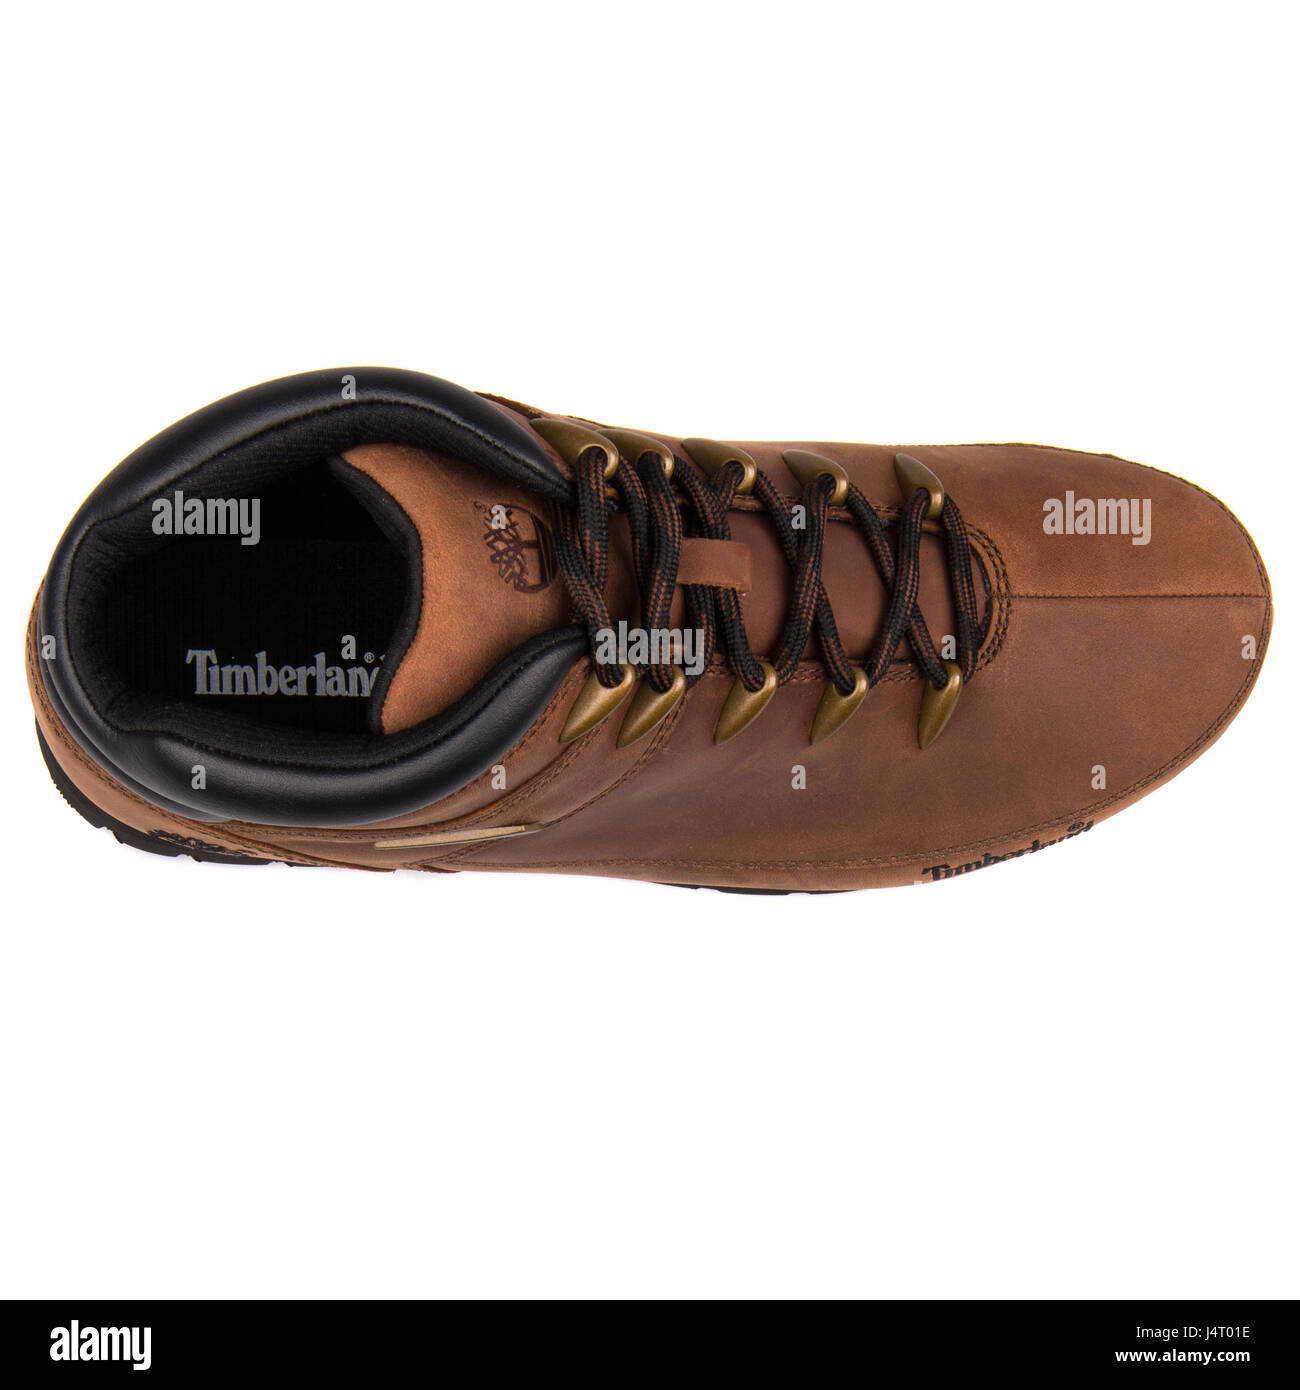 Timberland Euro Sprint Hiker Nubuck Brown Leather Boots - A11ZX ... c01078aa8